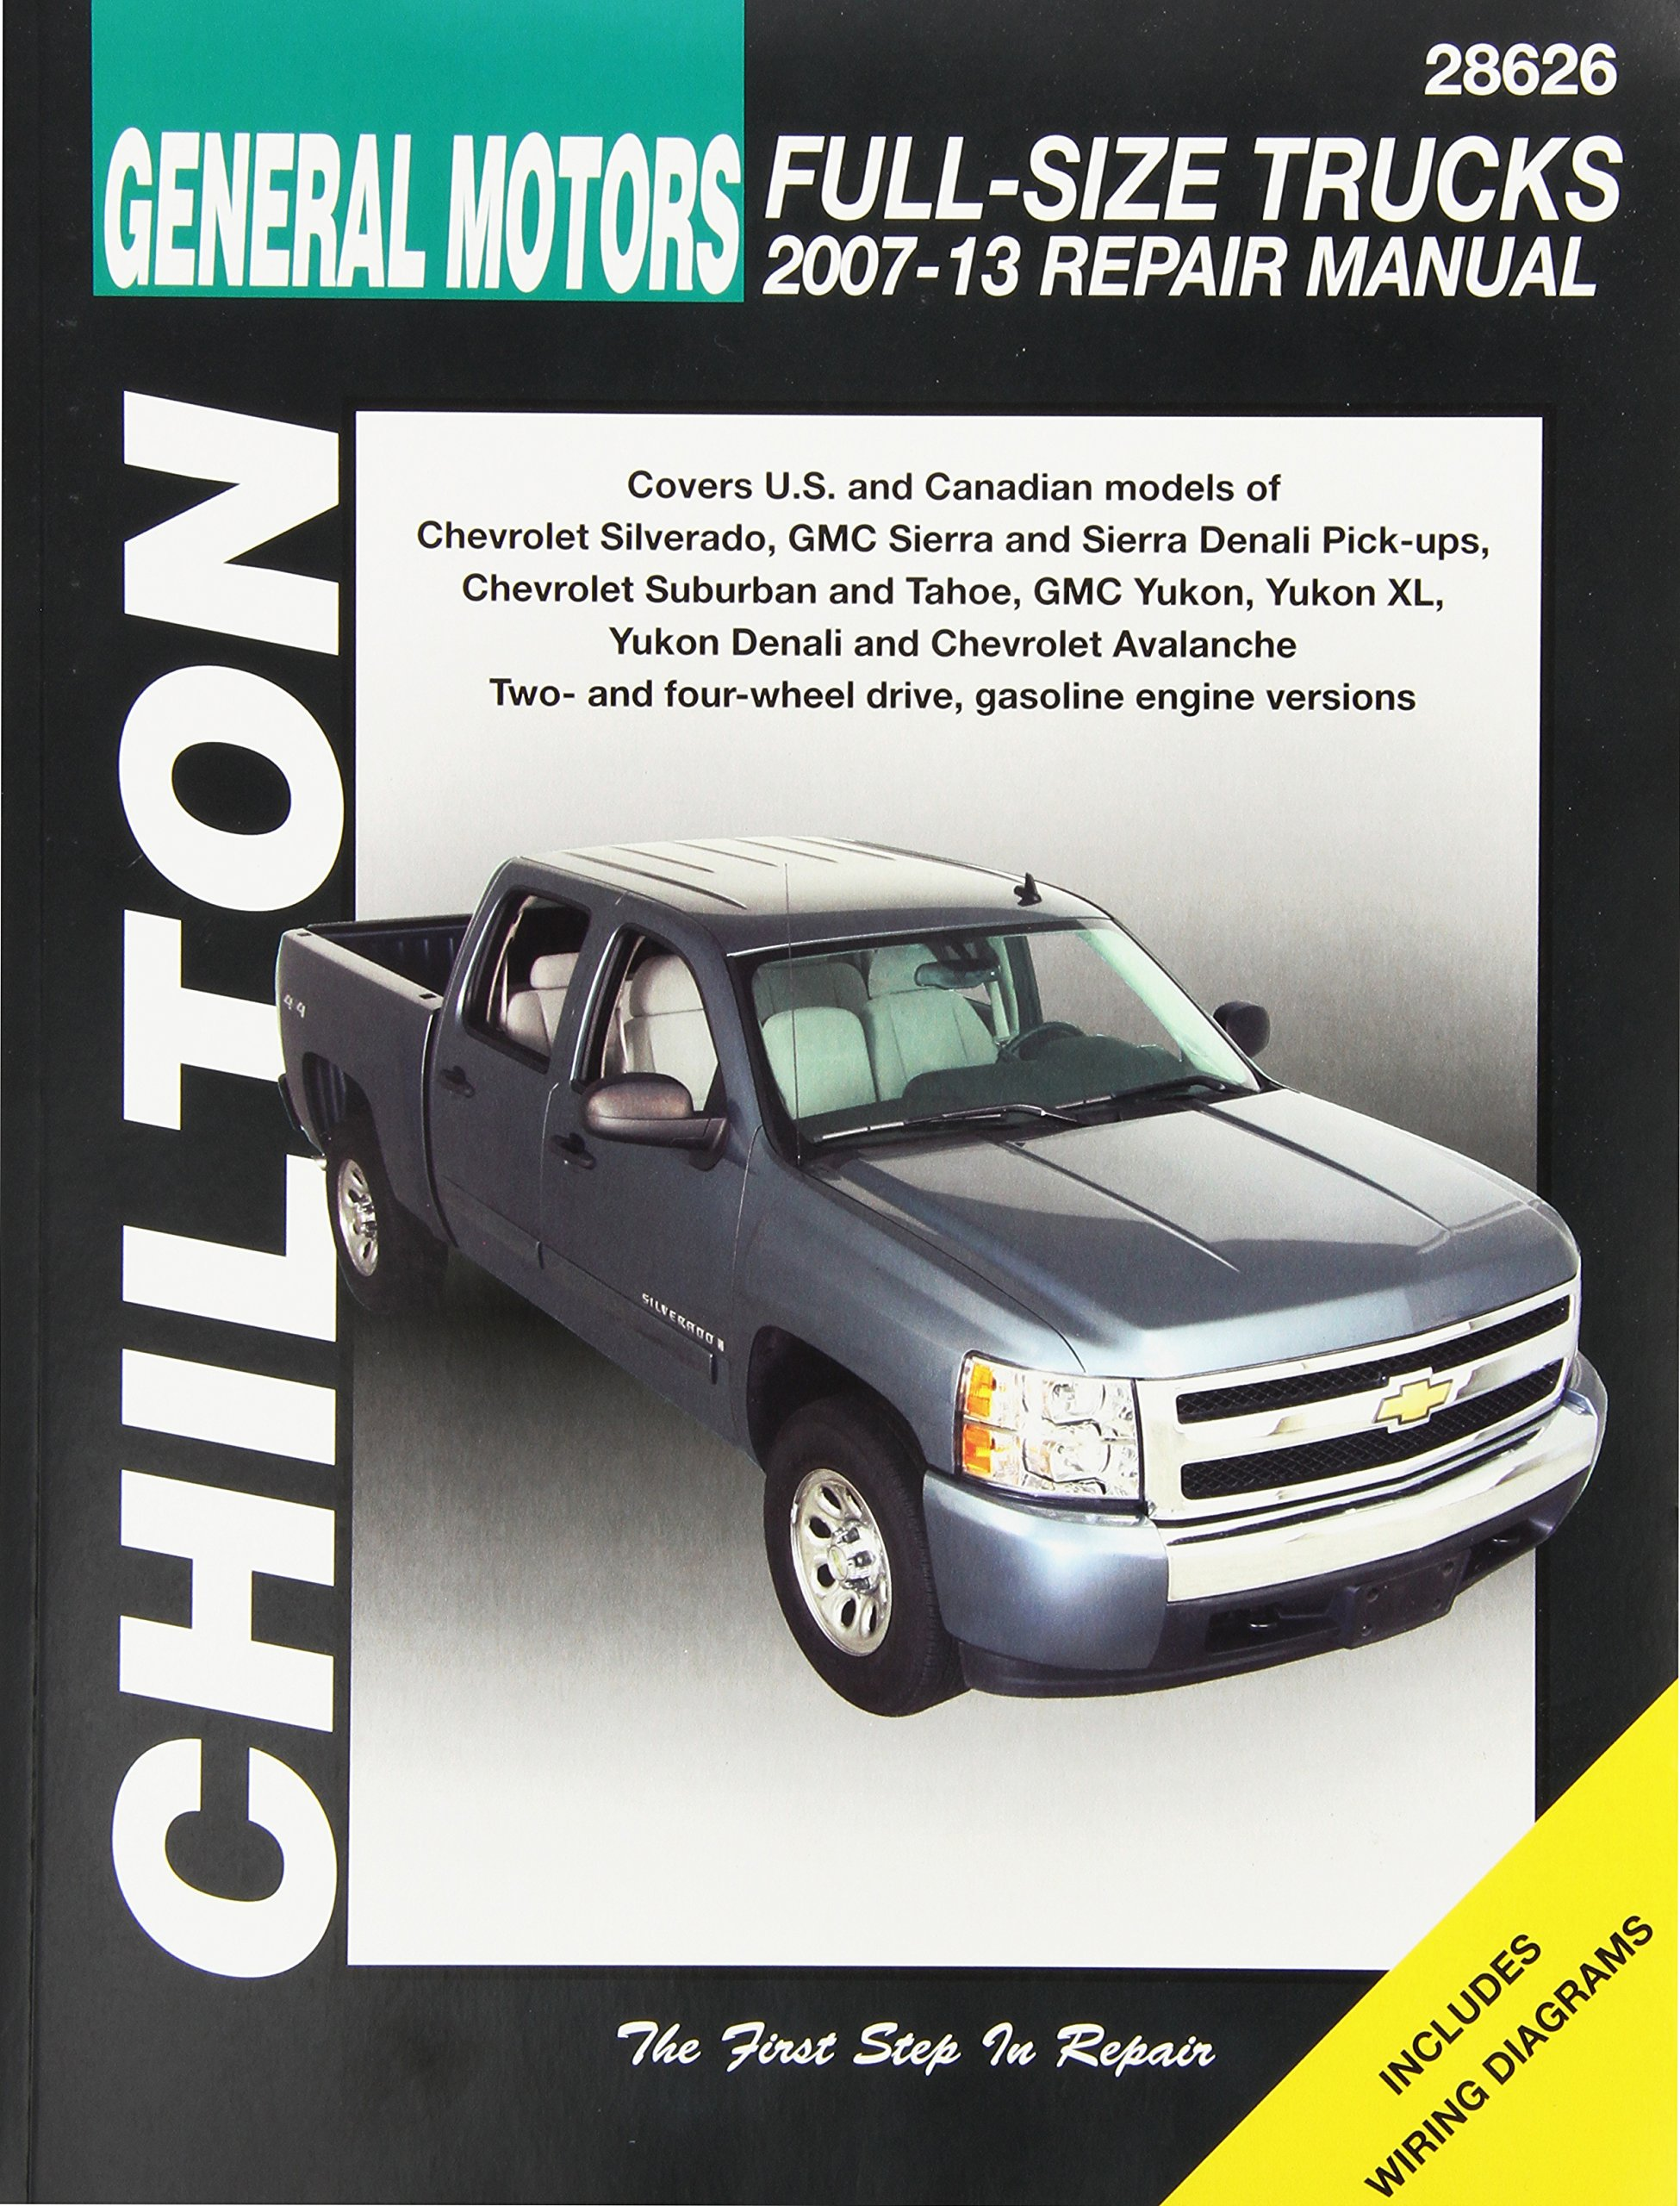 2008 chevy malibu owners manual